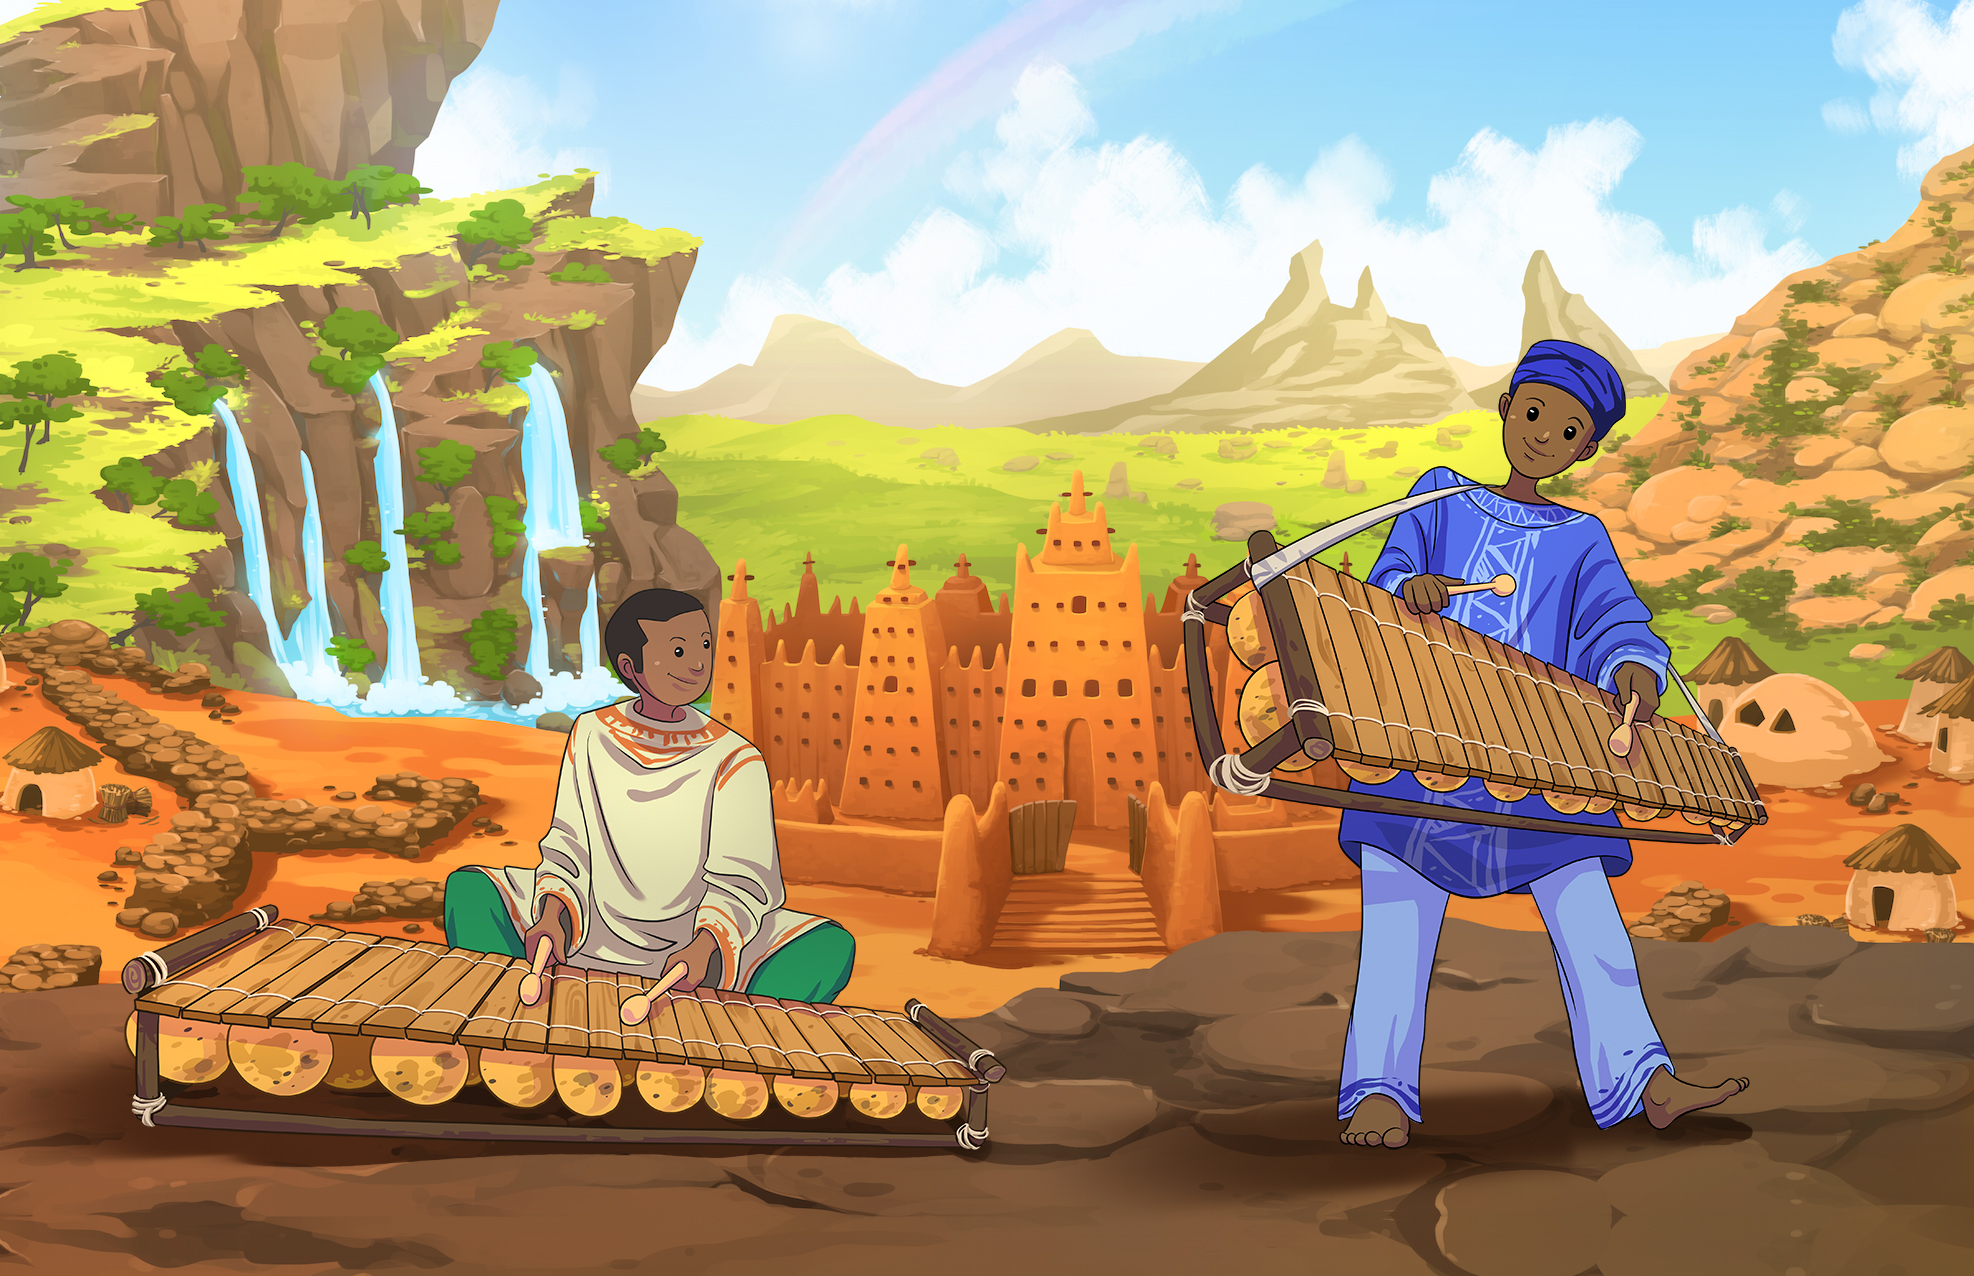 Balafon And Griots Cultural Infusion